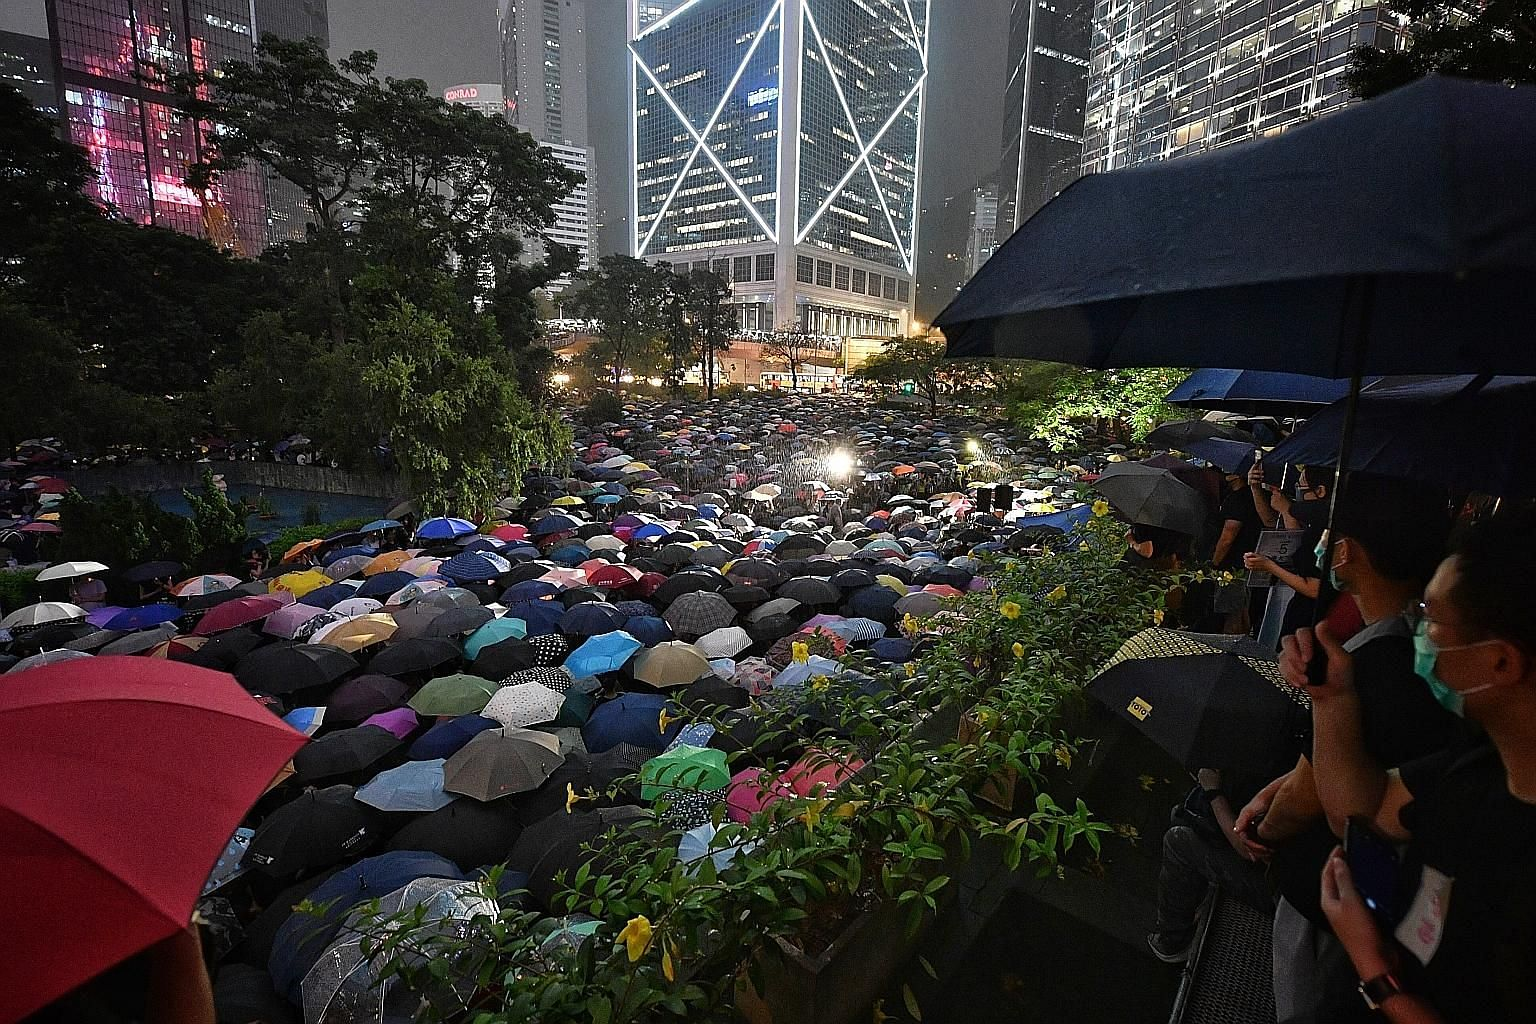 Chater Garden, in the heart of Hong Kong's business district, and its surrounding areas were turned into a sea of umbrellas last night as 13,000 civil servants gathered despite an evening shower to show their support for the anti-extradition movement